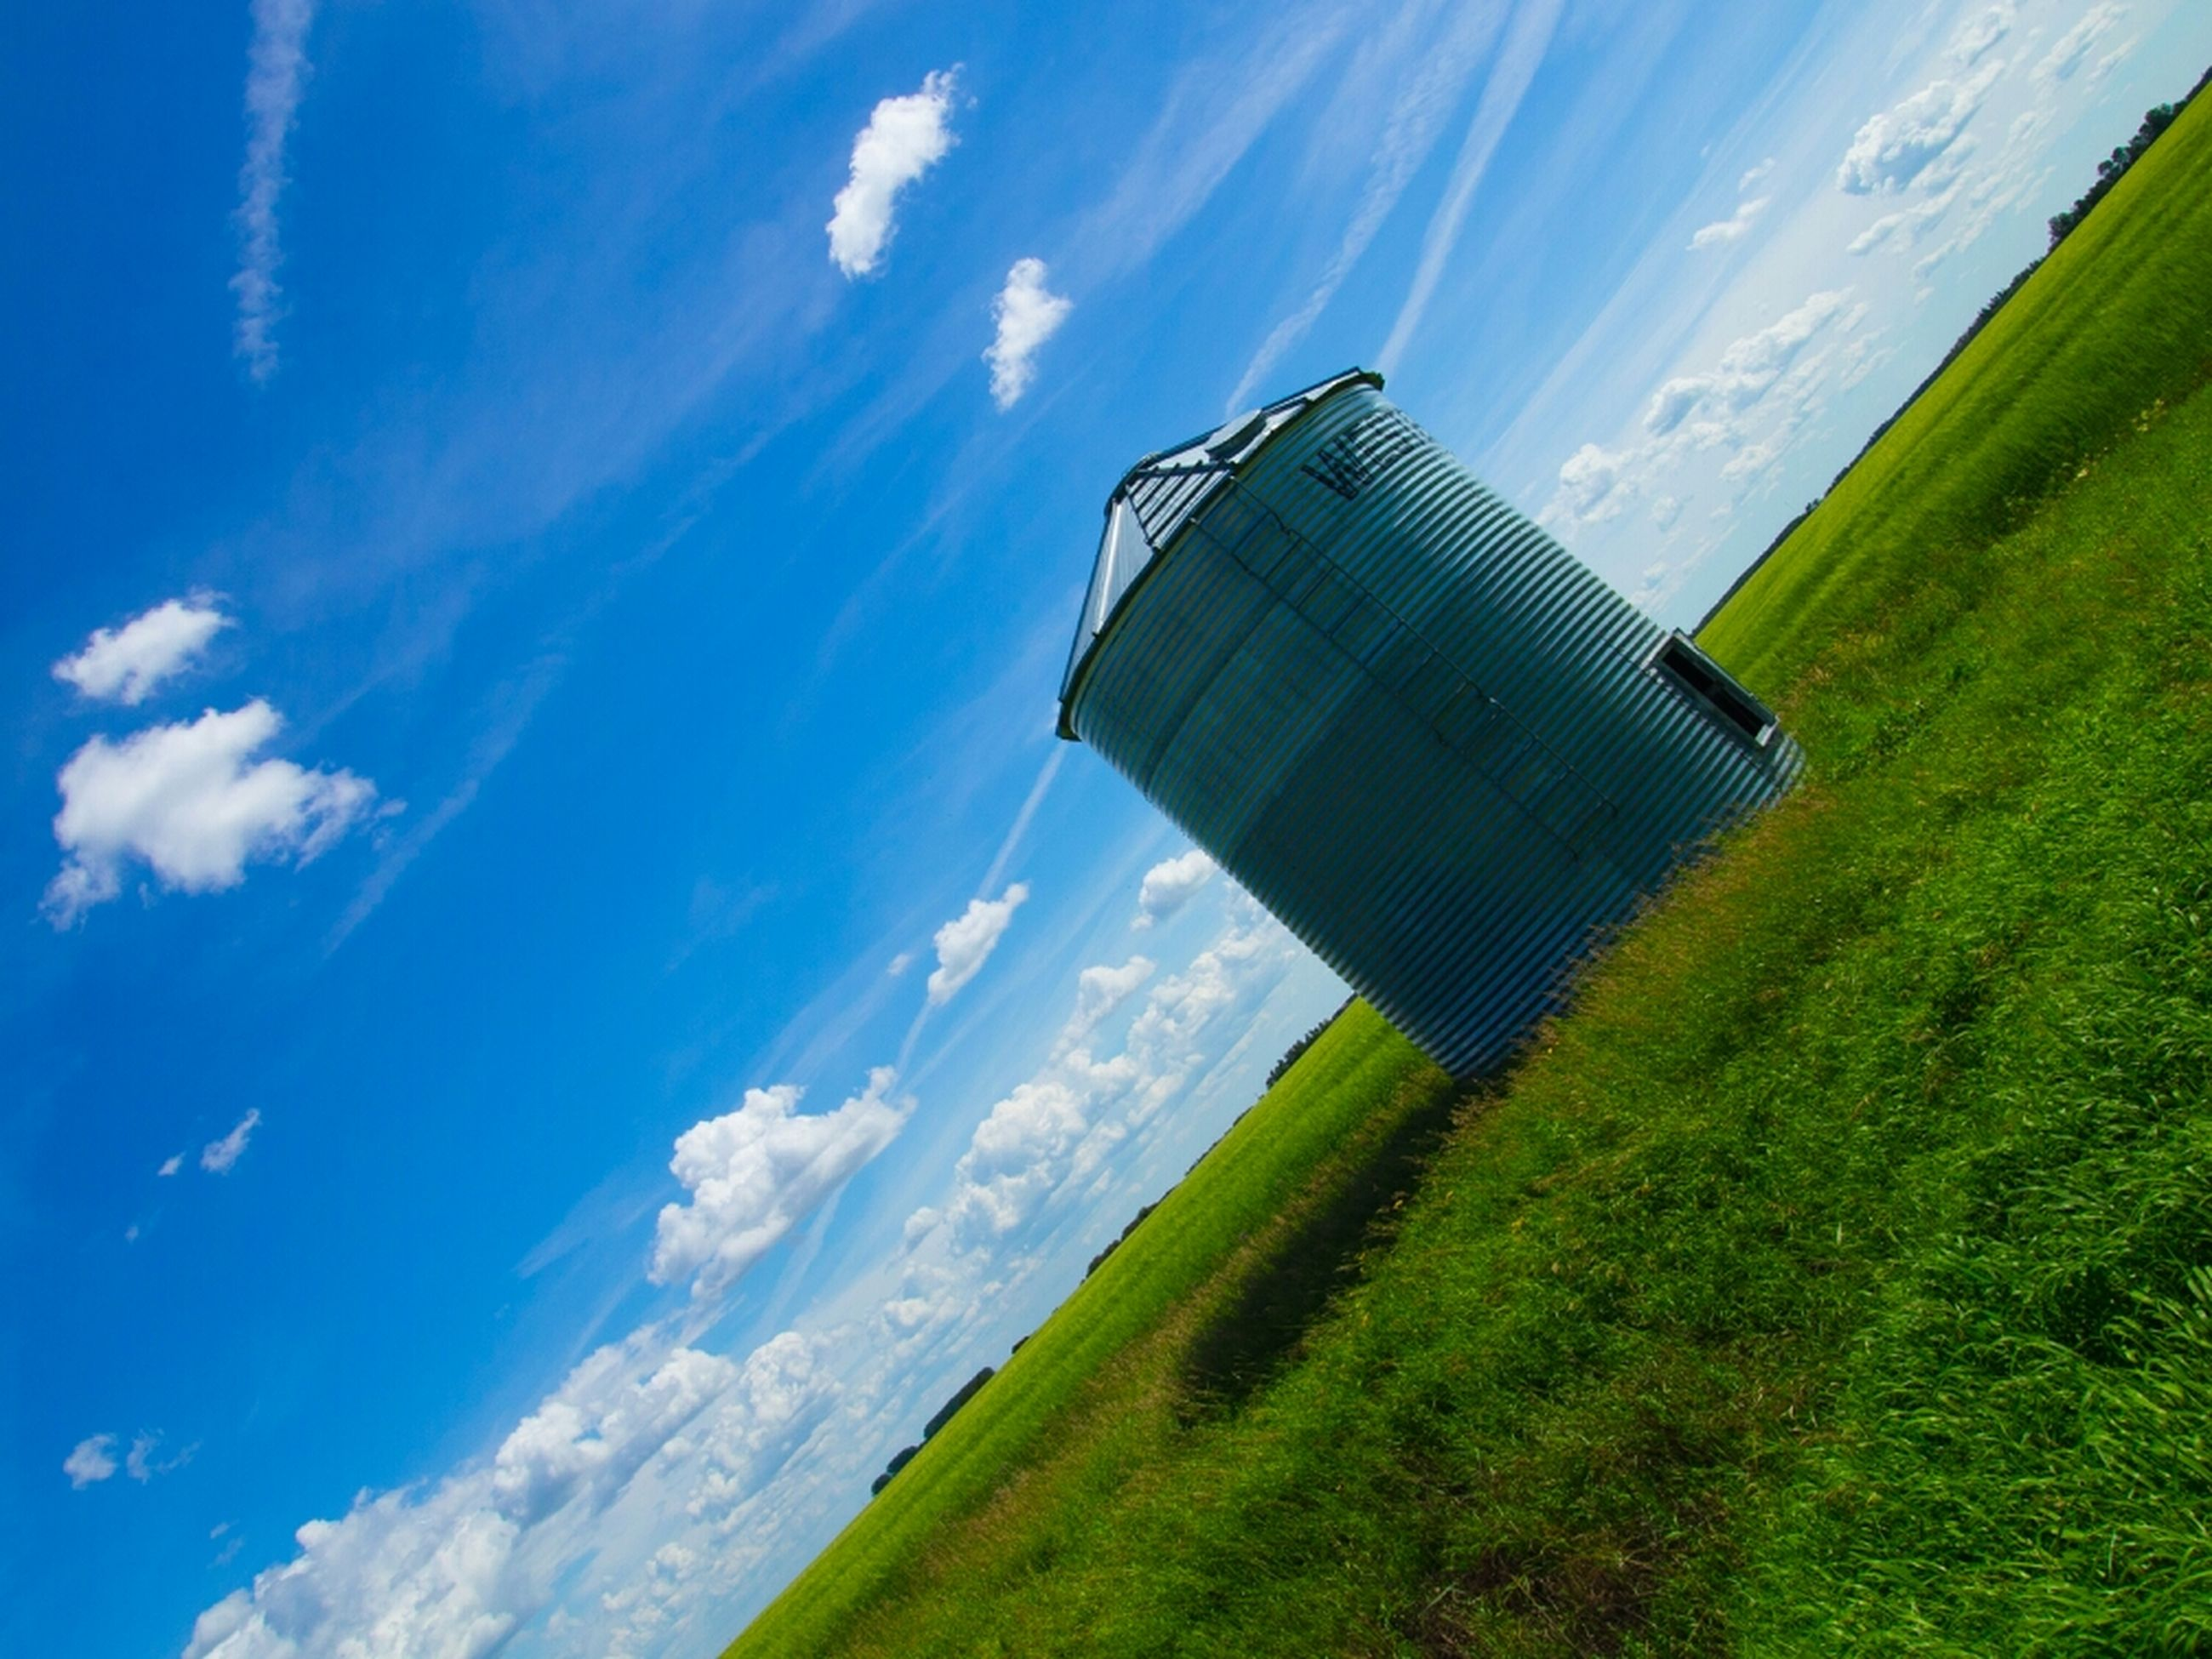 building exterior, architecture, sky, built structure, blue, grass, green color, landscape, cloud - sky, cloud, day, nature, field, sunlight, scenics, beauty in nature, outdoors, no people, tree, tranquil scene